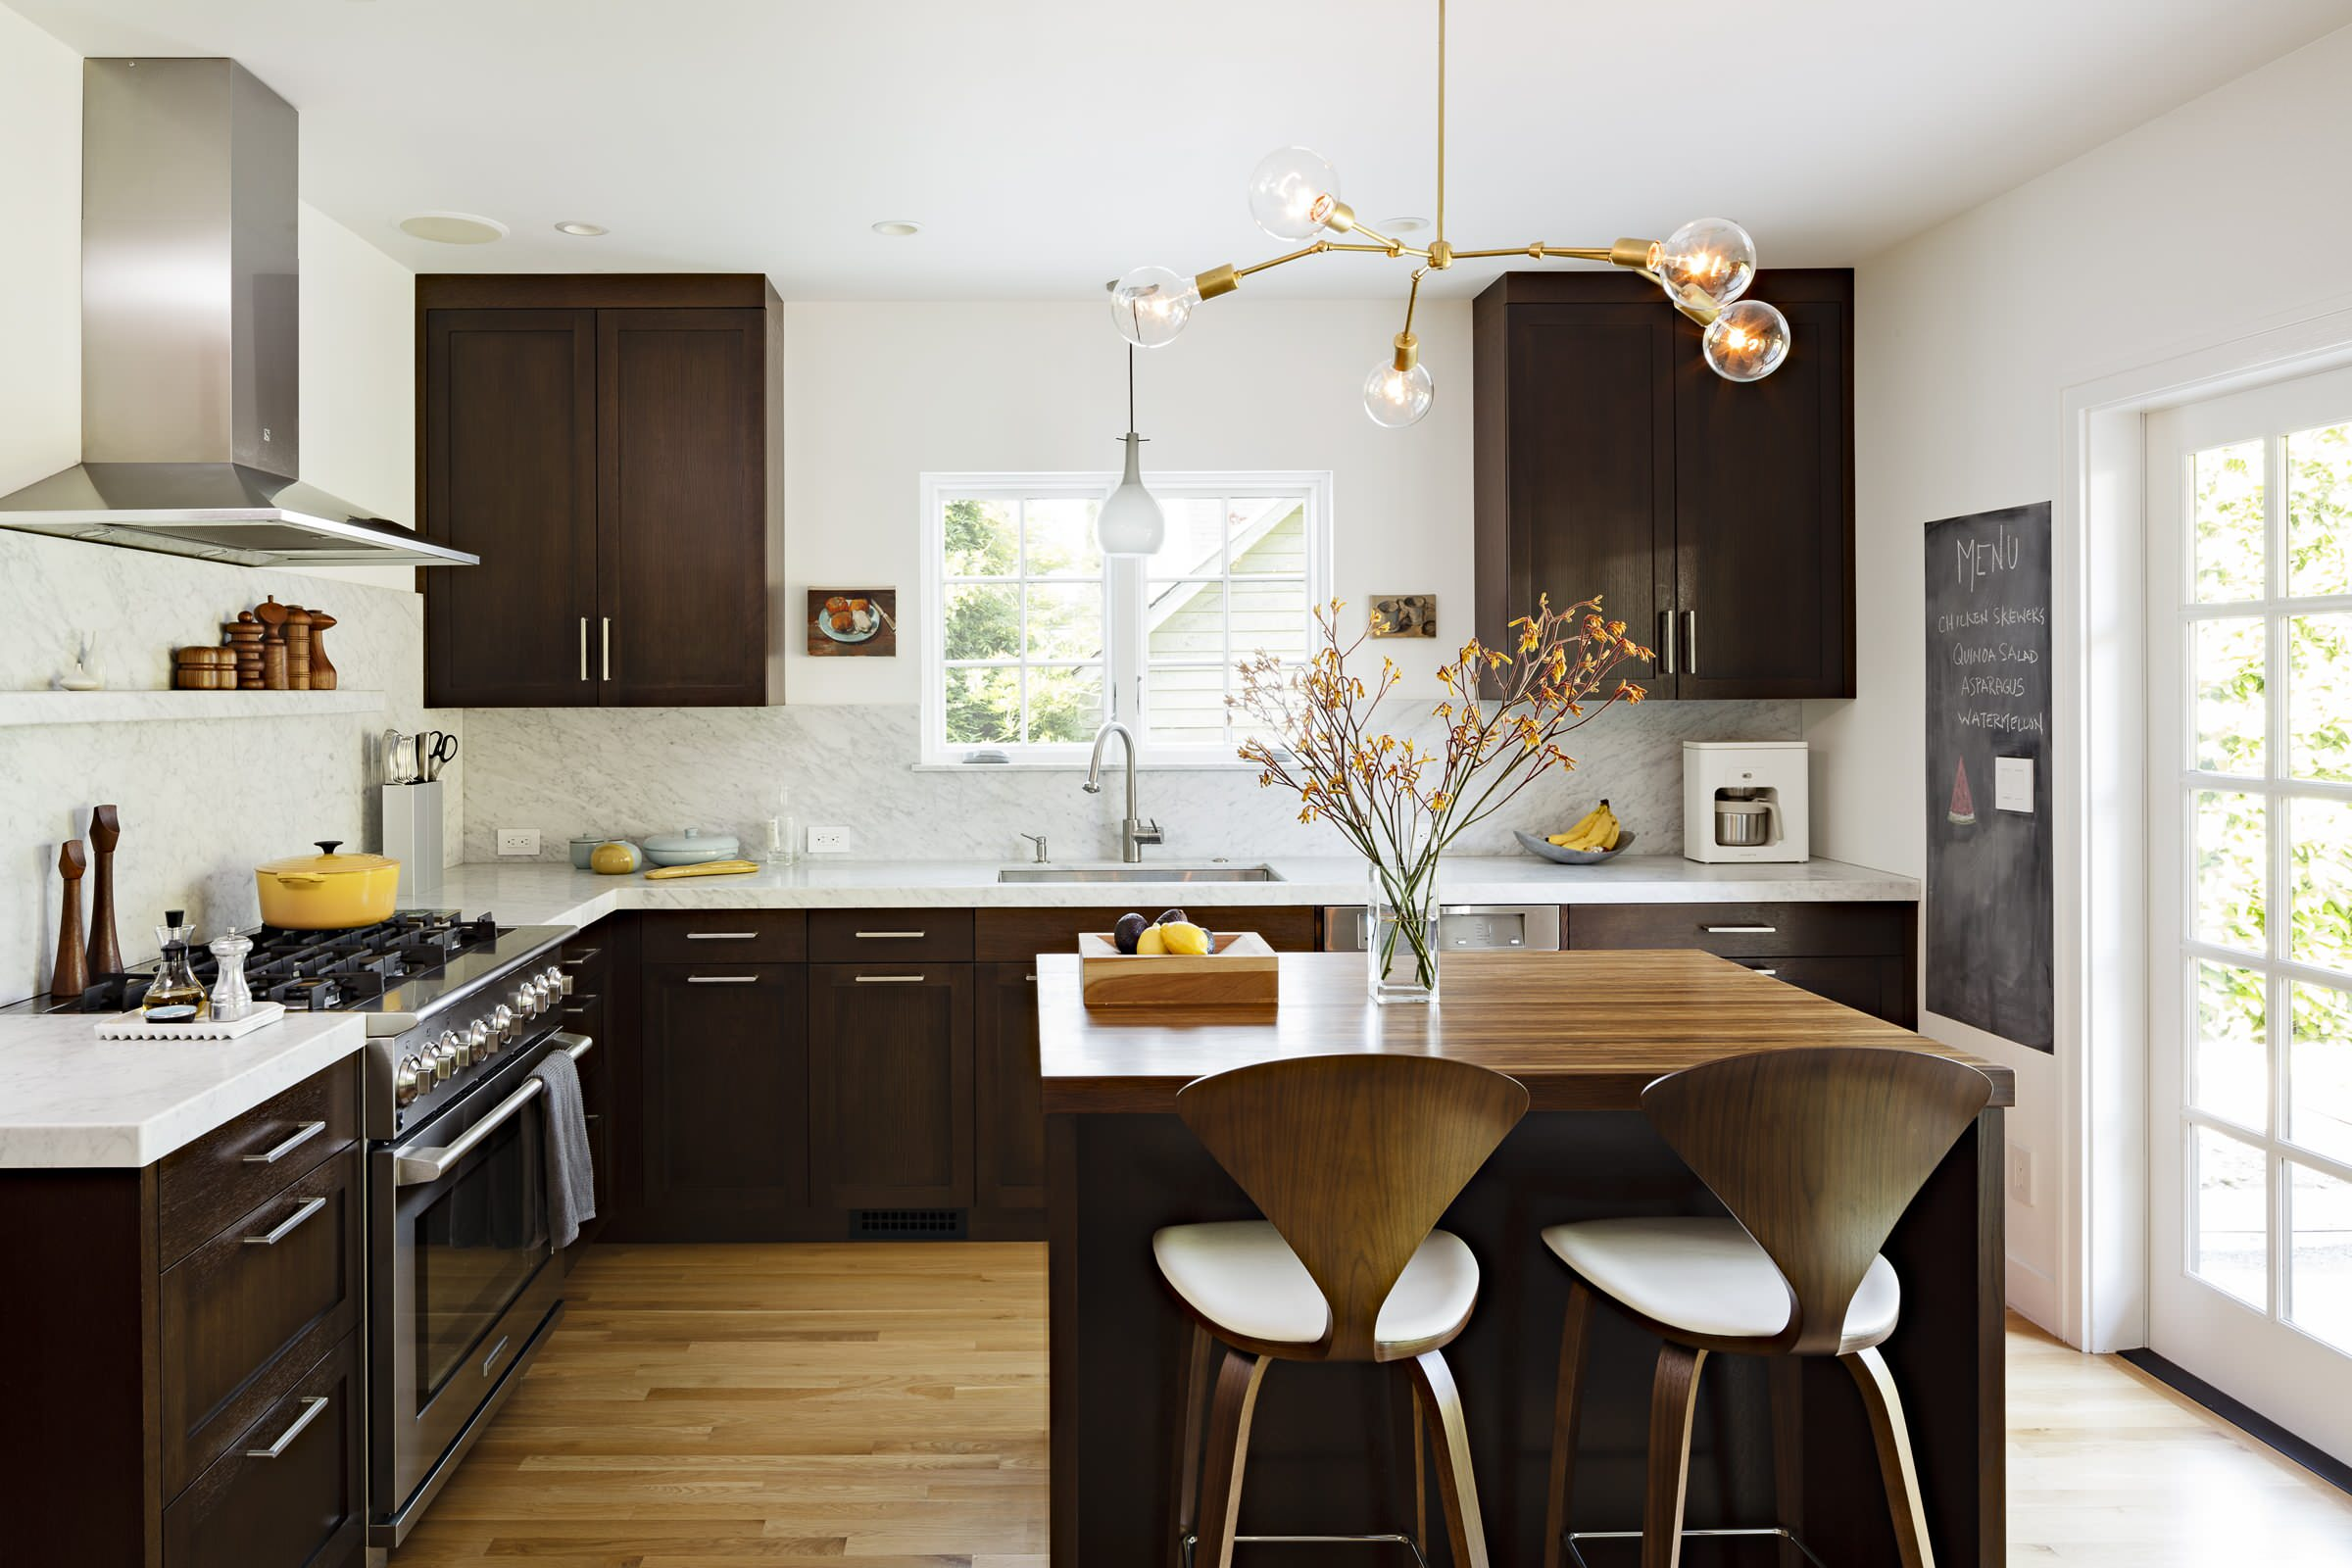 Kitchen Island Lights Come In All Shapes Sizes And Prices Basically Your Options Are Nearly Limitless But This Article Is Not So Rest Assured That No